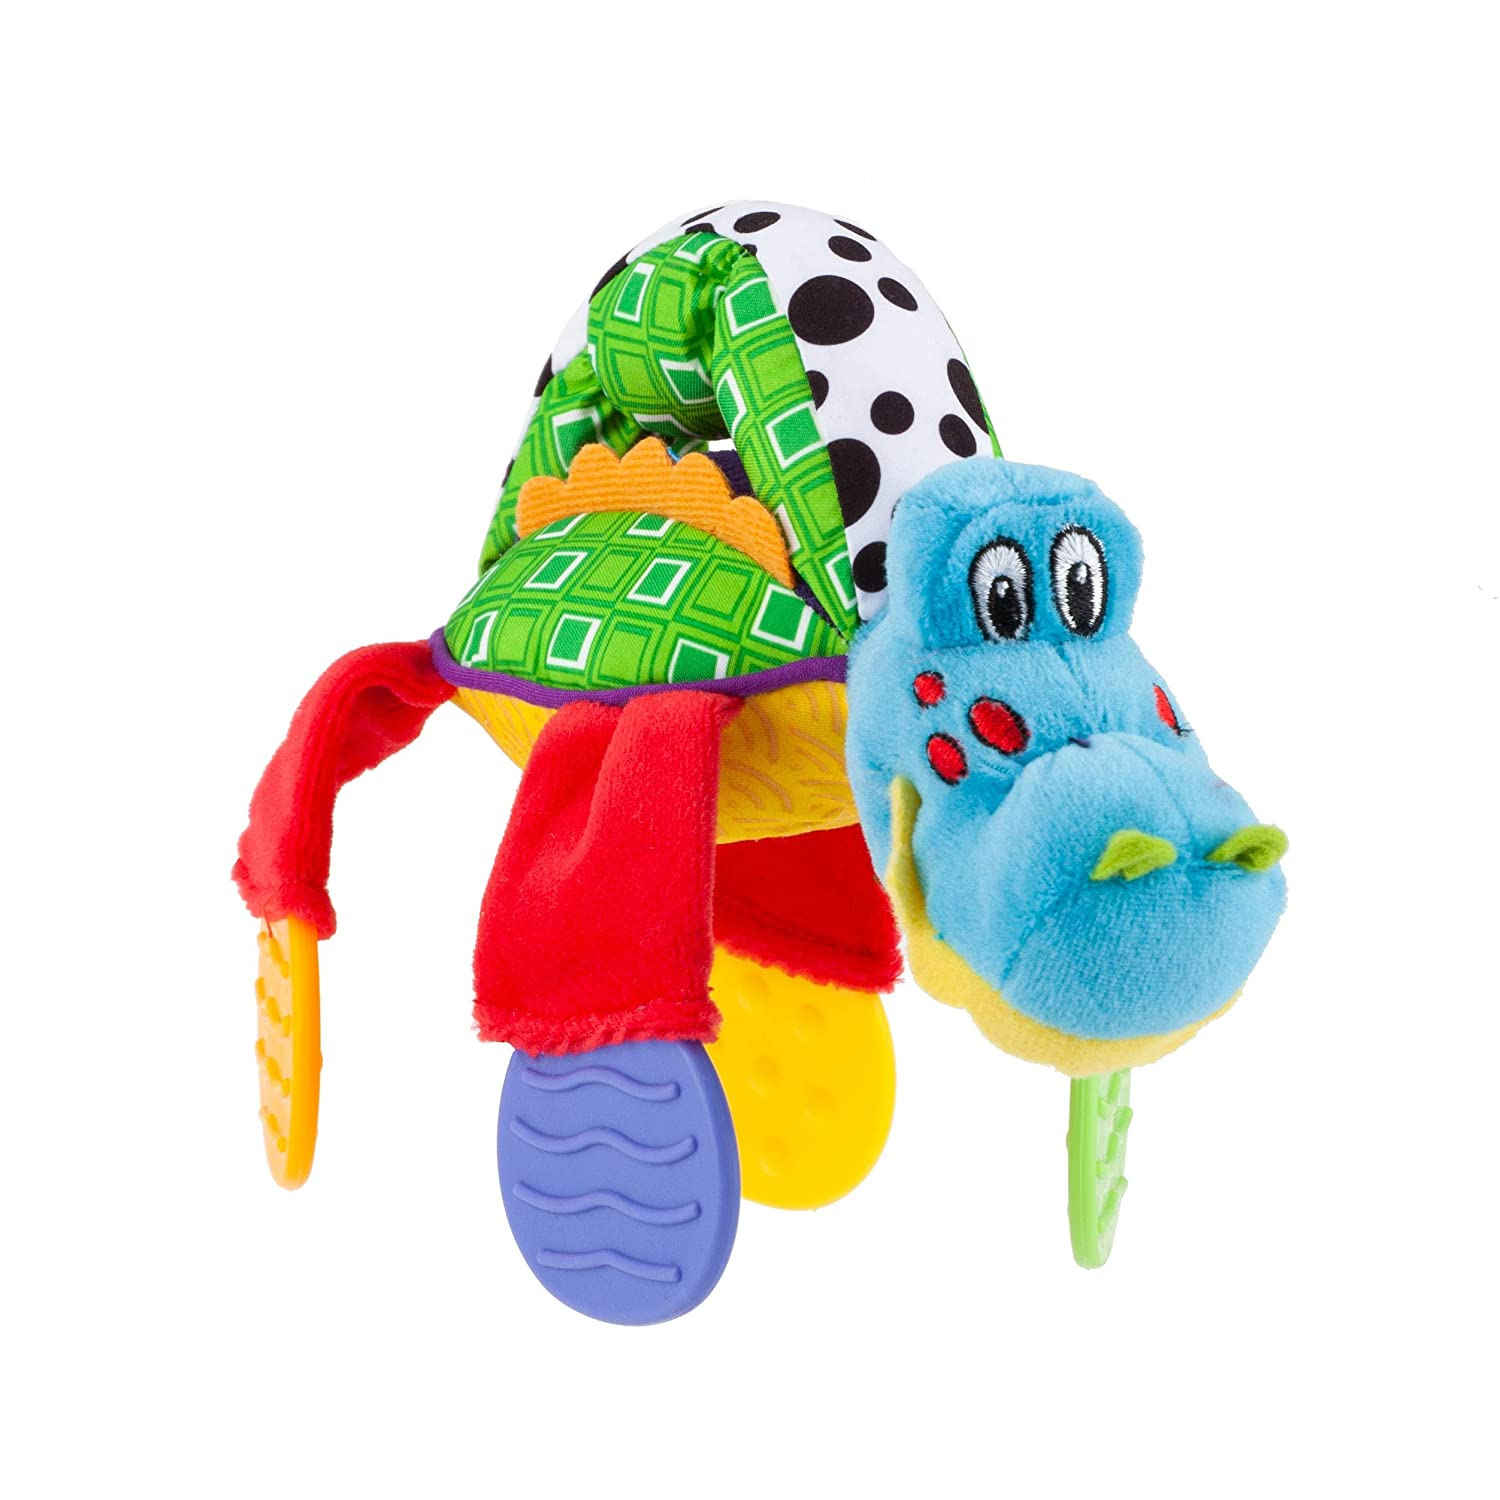 Alligator Nuby Floppers Plush Teether